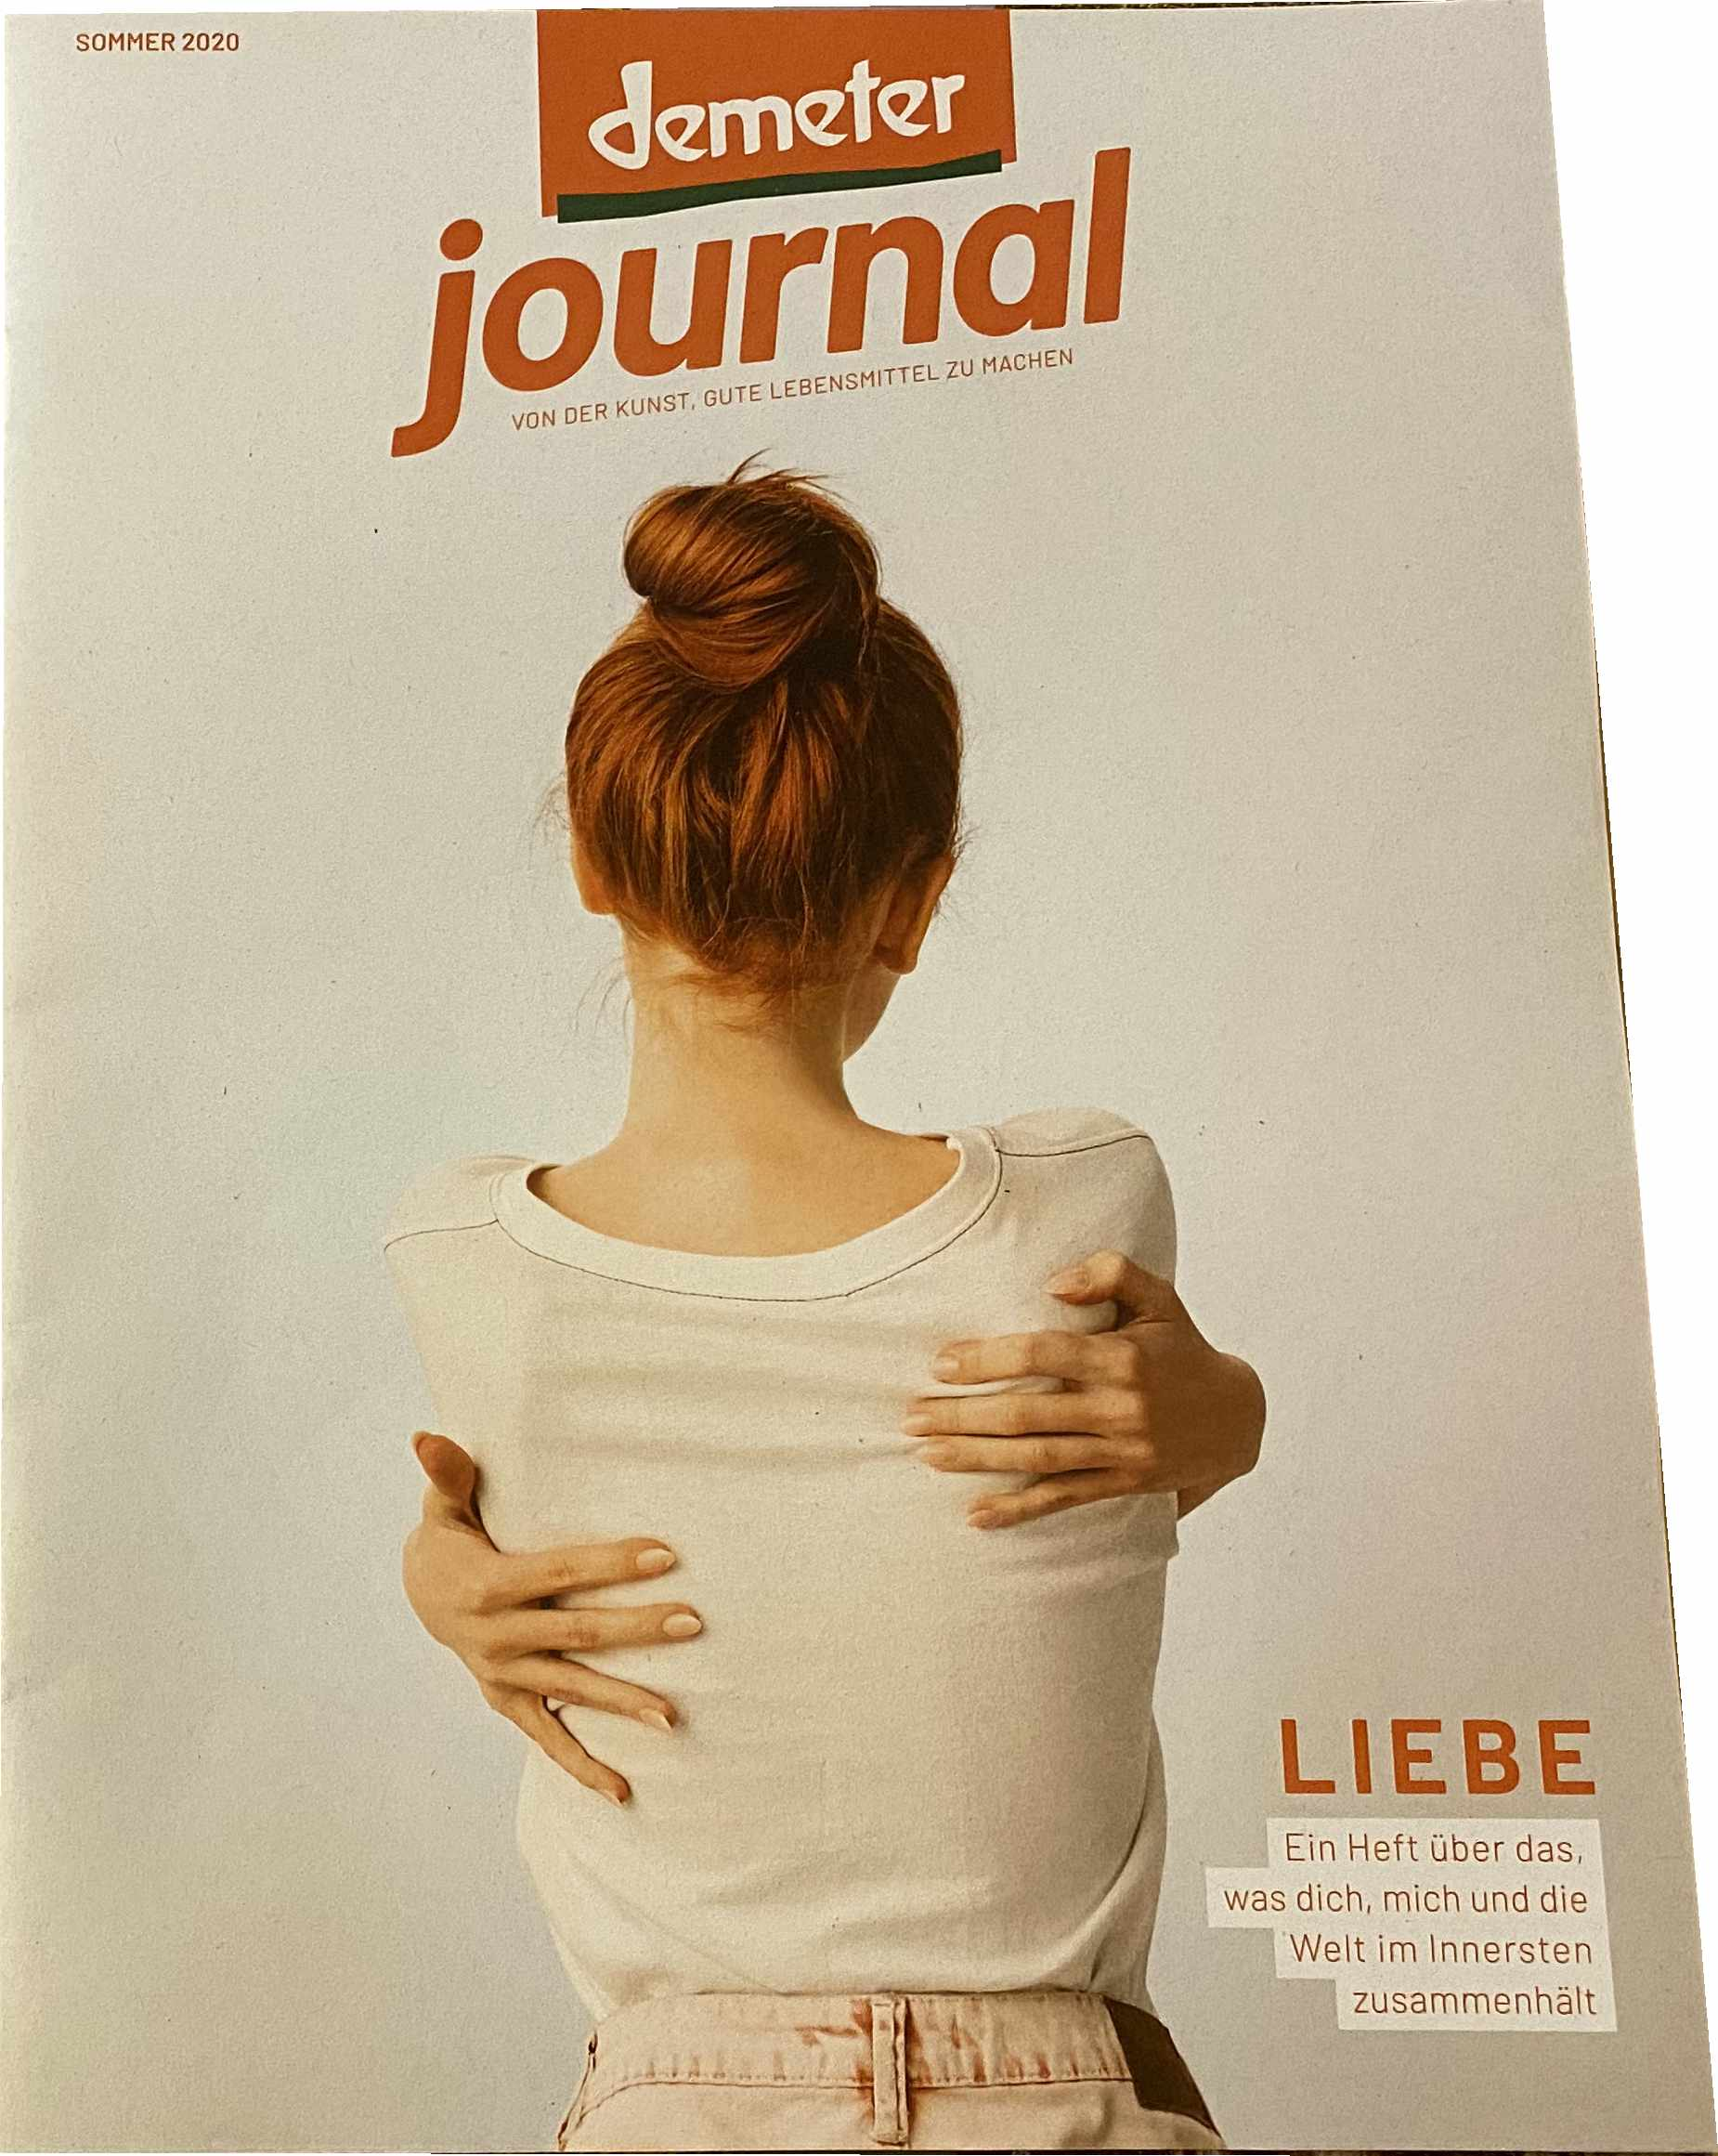 Demeter Journal Sommer 2020